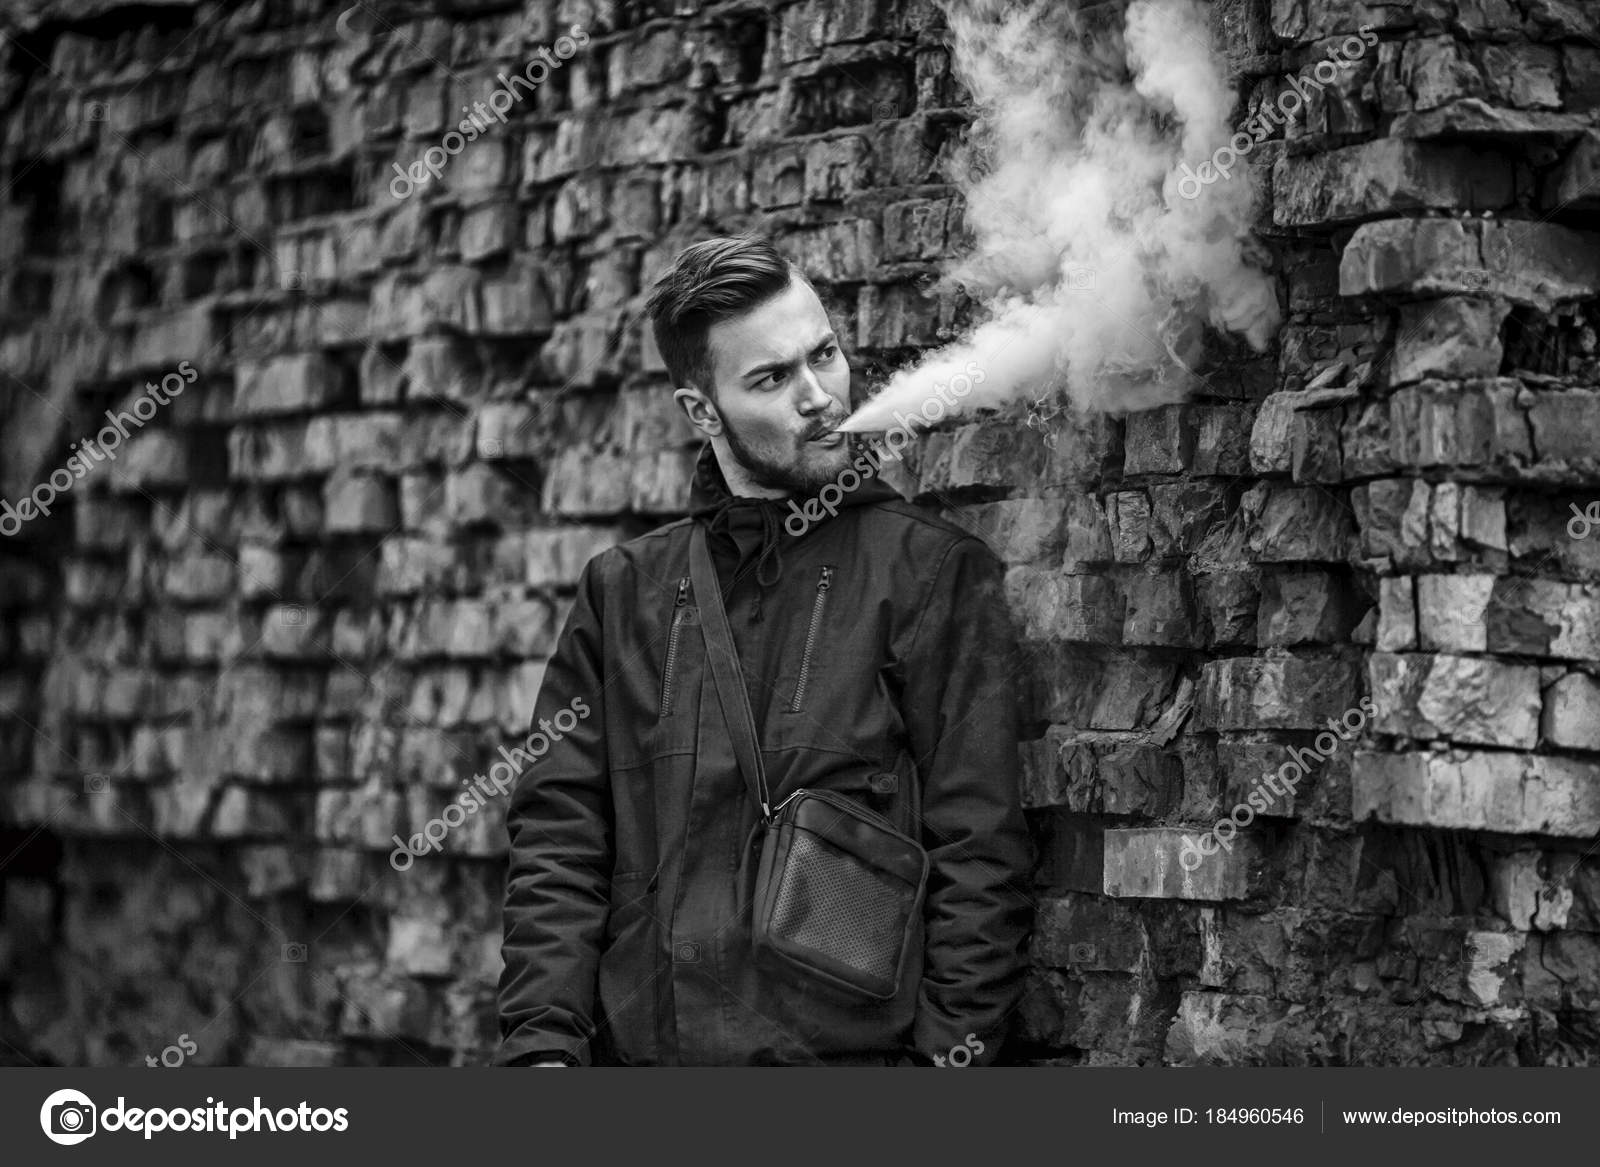 Vape man. Photo of a handsome young white guy with modern haircut in the black clothes vaping and letting off steam from an electronic cigarette near old ...